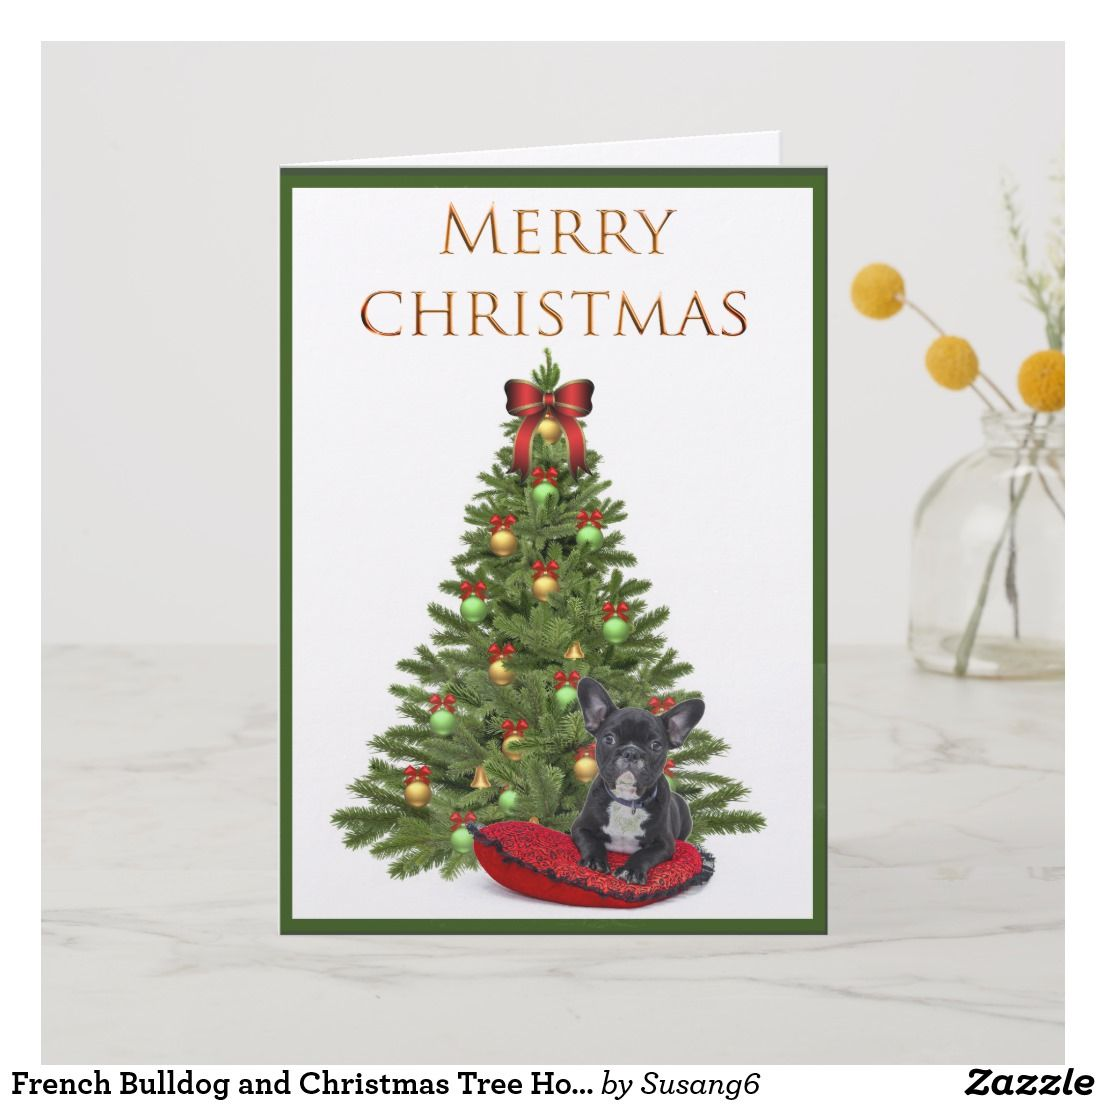 French Bulldog and Christmas Tree Holiday Card in 2018 | Christmas ...